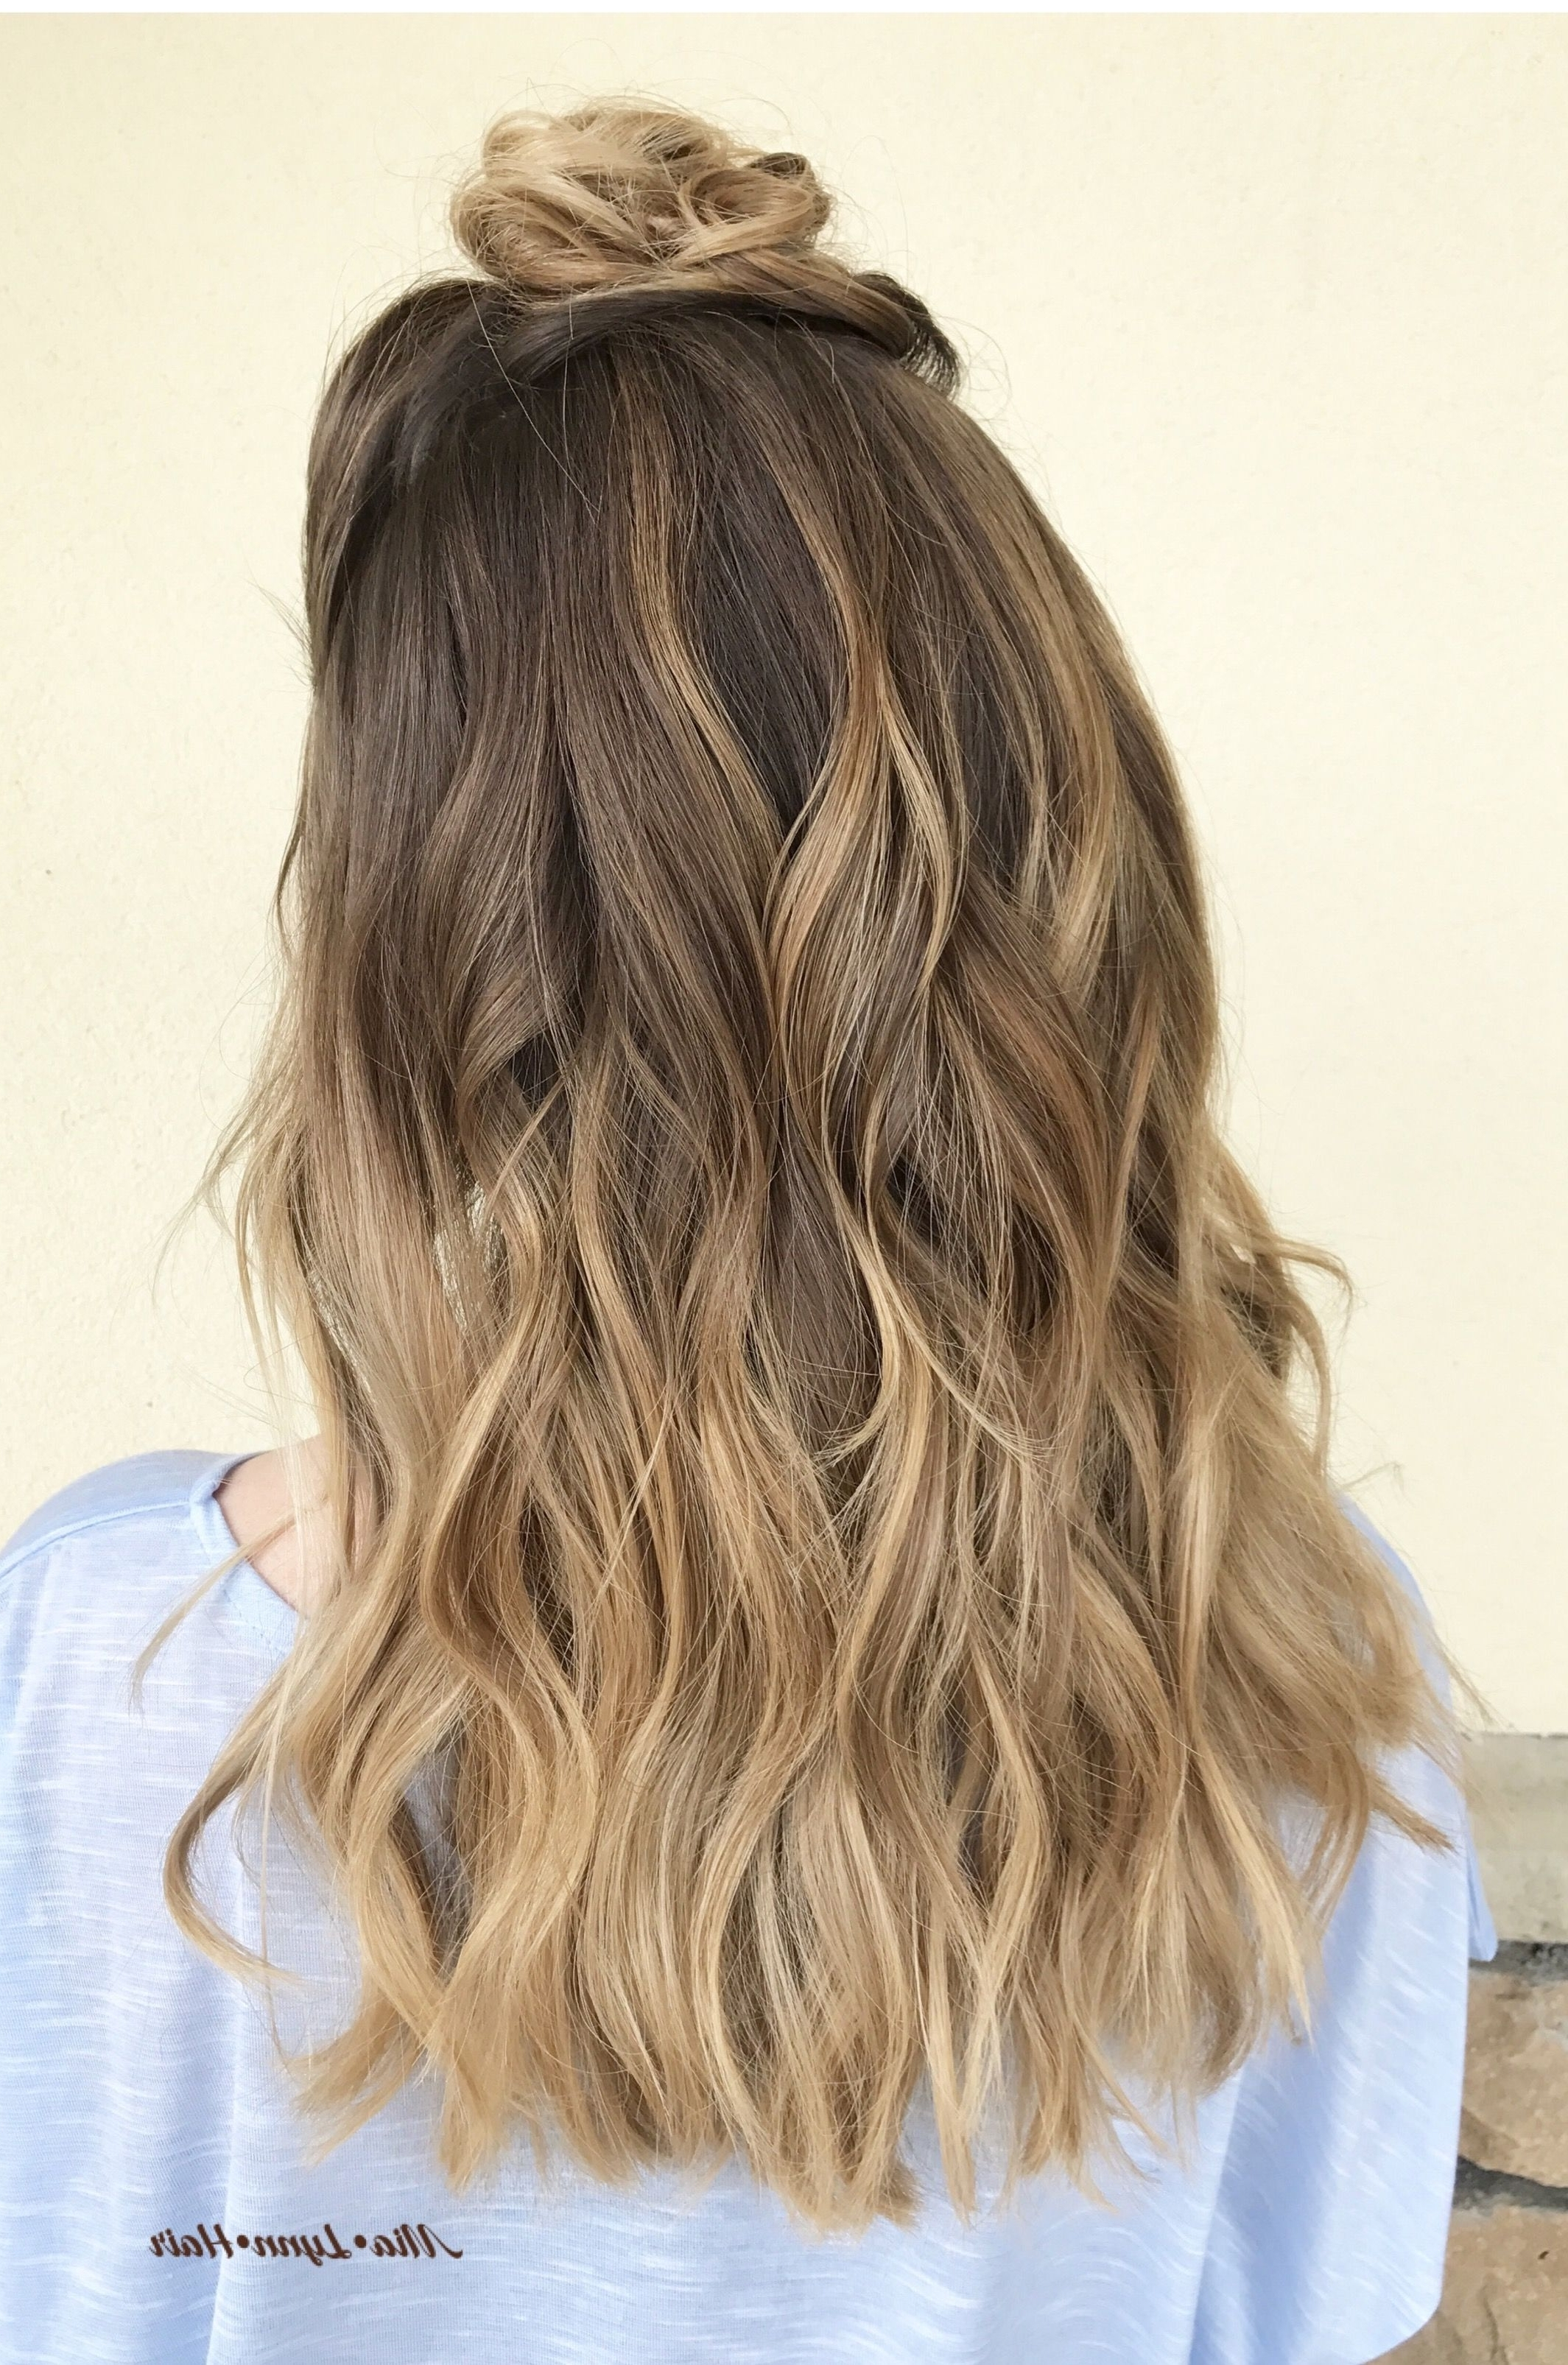 Latest Bronde Beach Waves Blonde Hairstyles With Regard To Balayage, Balayage Highlights, Painted Highlights, Blonde Hair (View 6 of 20)